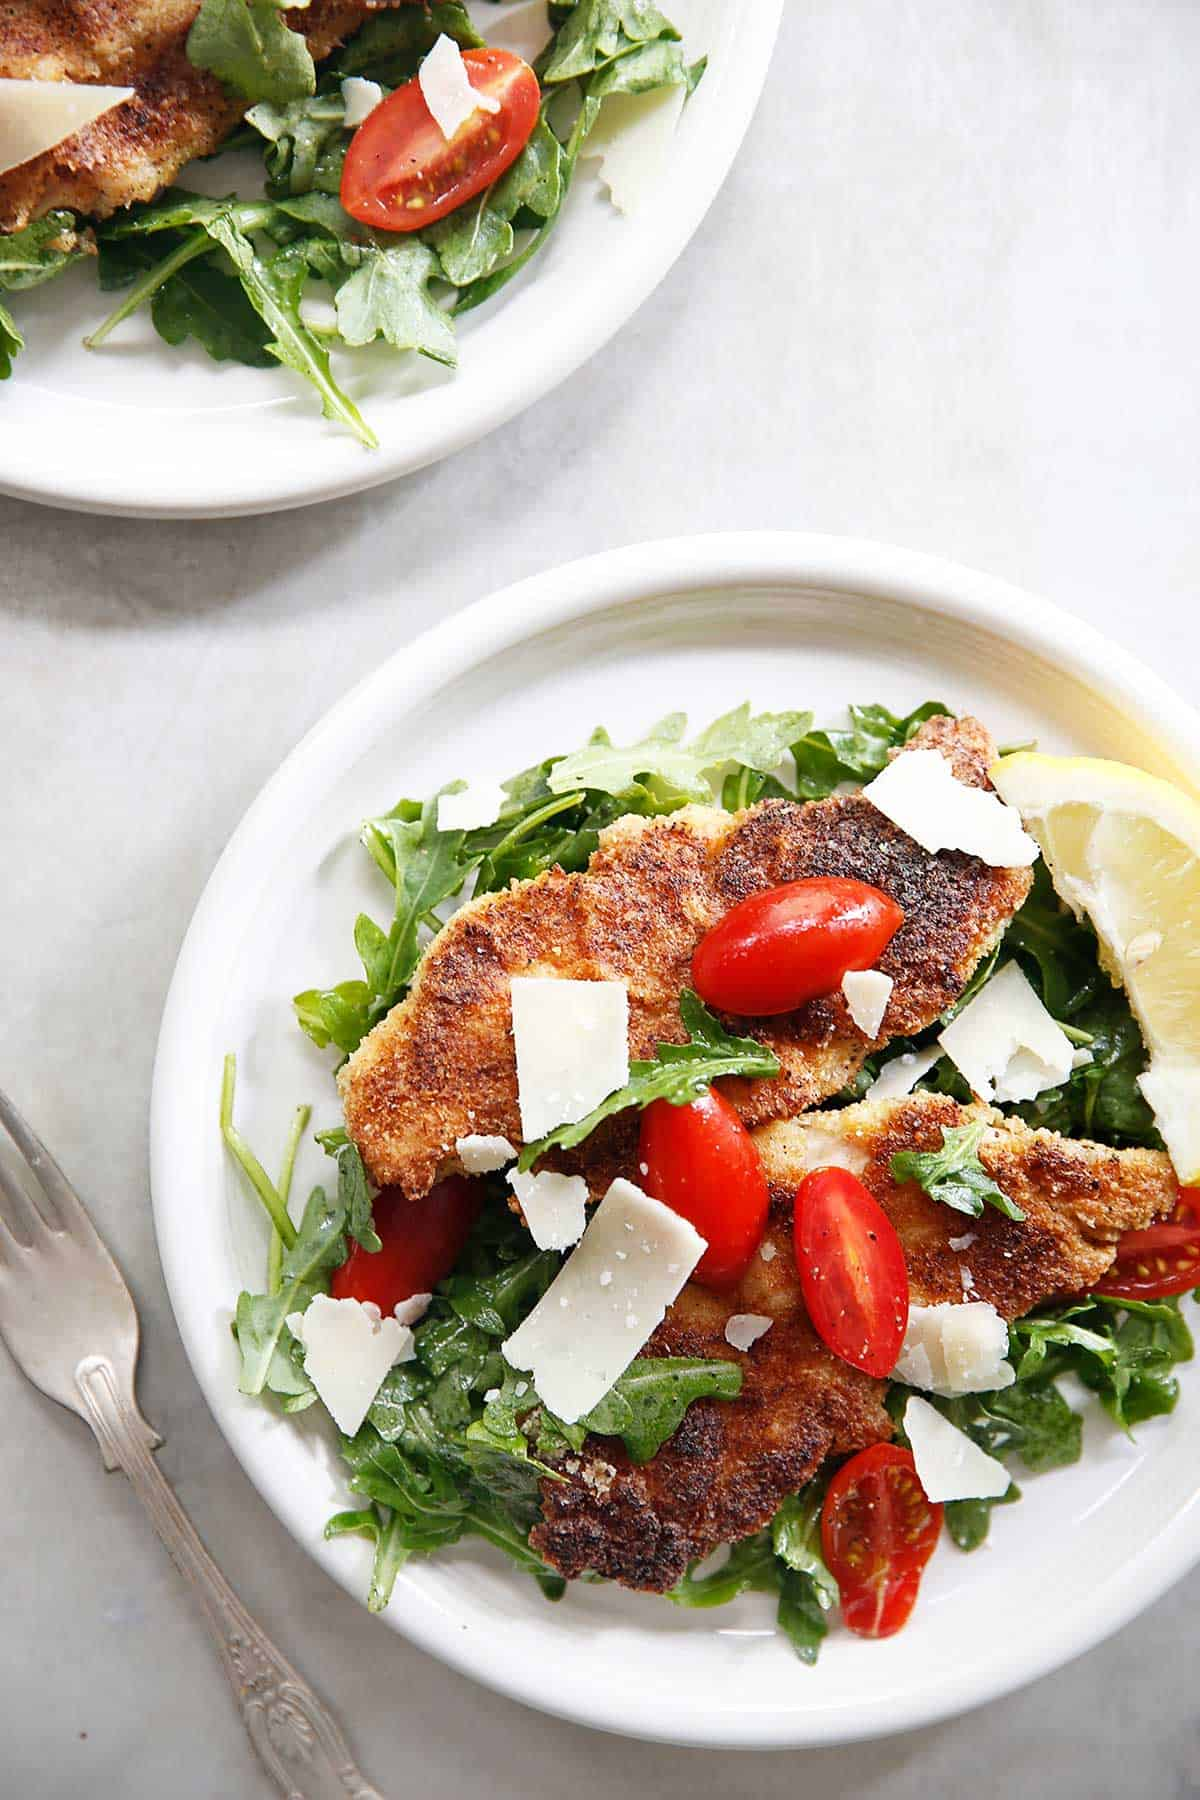 Paleo breaded chicken with salad on plates